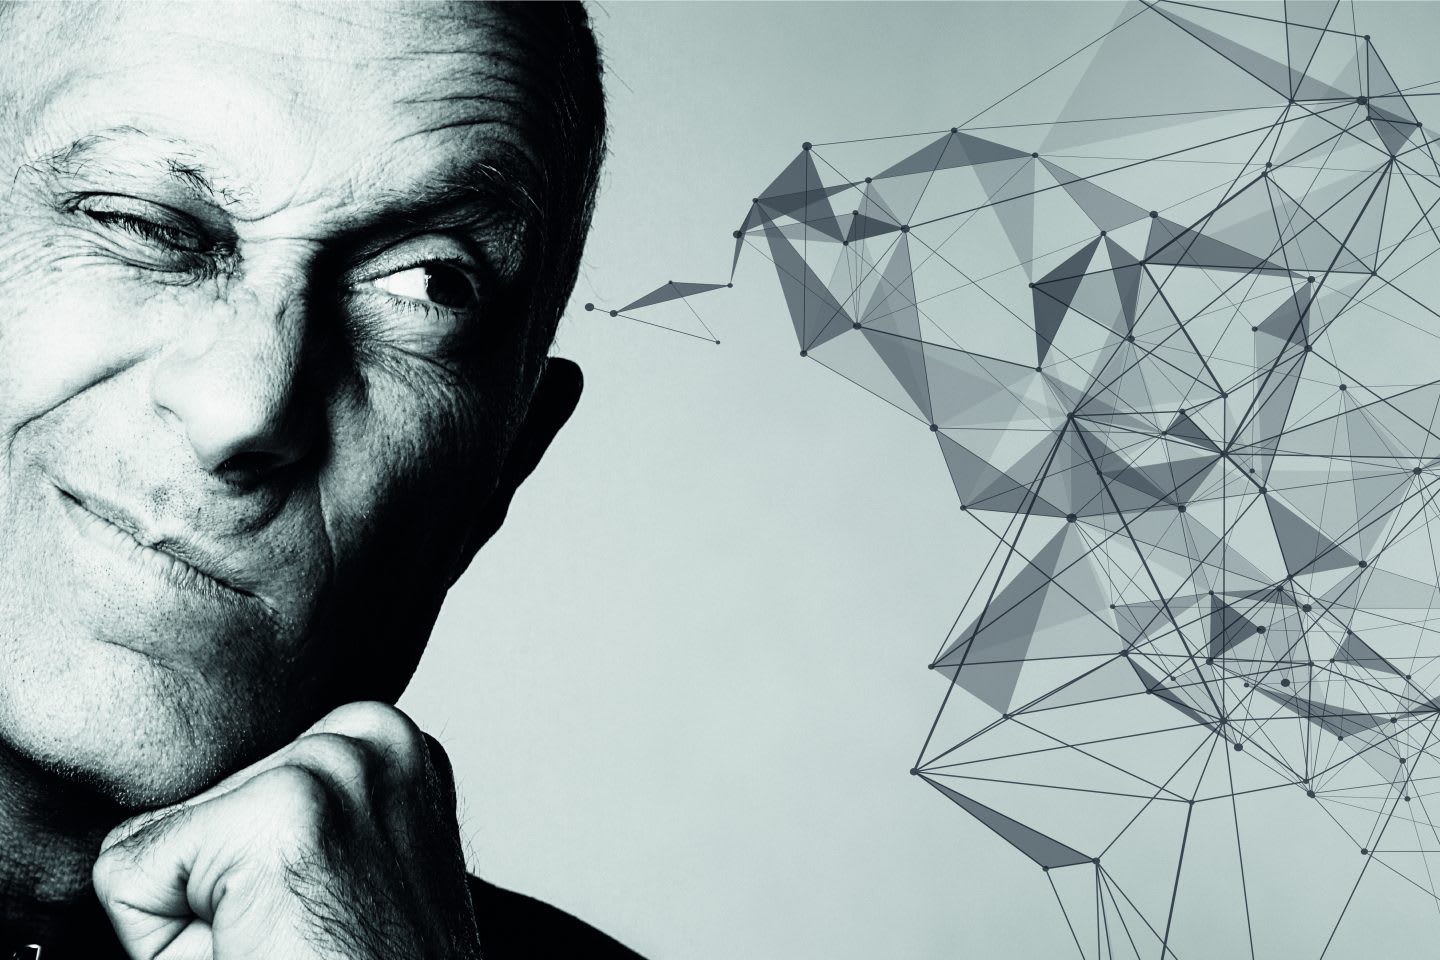 Black and white image of man with one eye closed focused and thinking with an abstract doodle drawn to illustrate his creative thoughts.